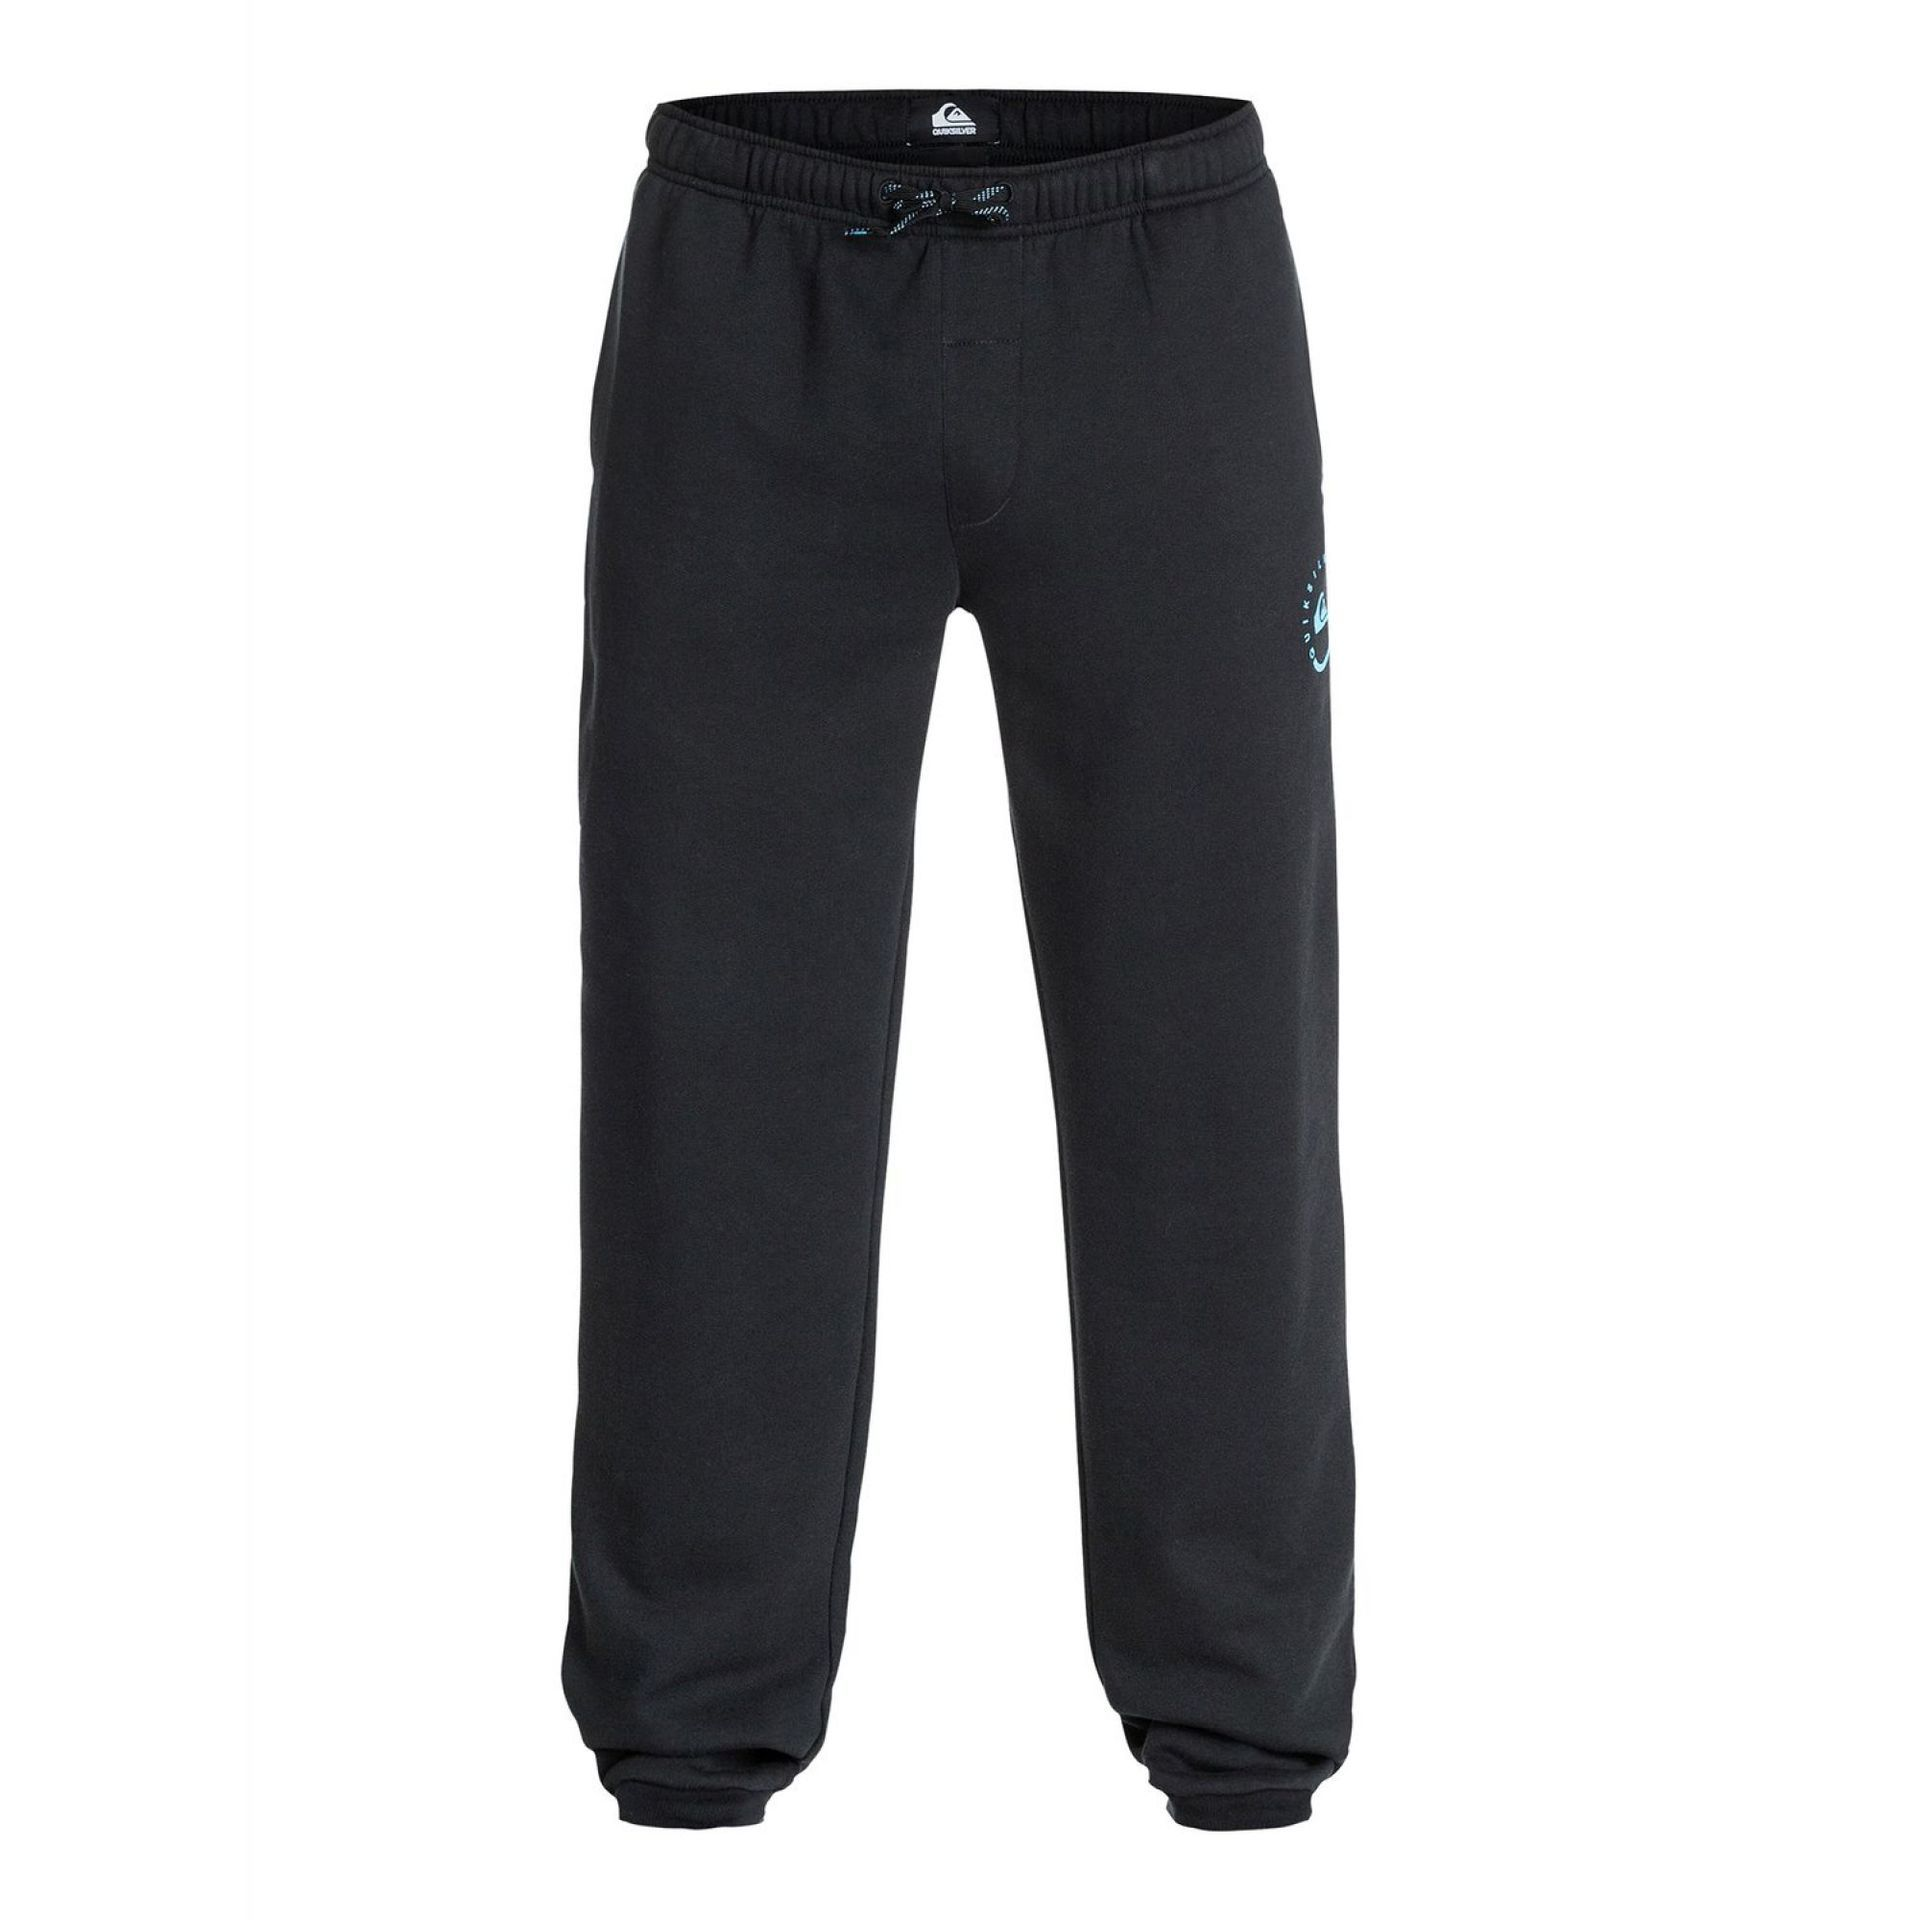 SPODNIE QUIKSILVER EVERYDAY TRACKPANT ANTHRACITE